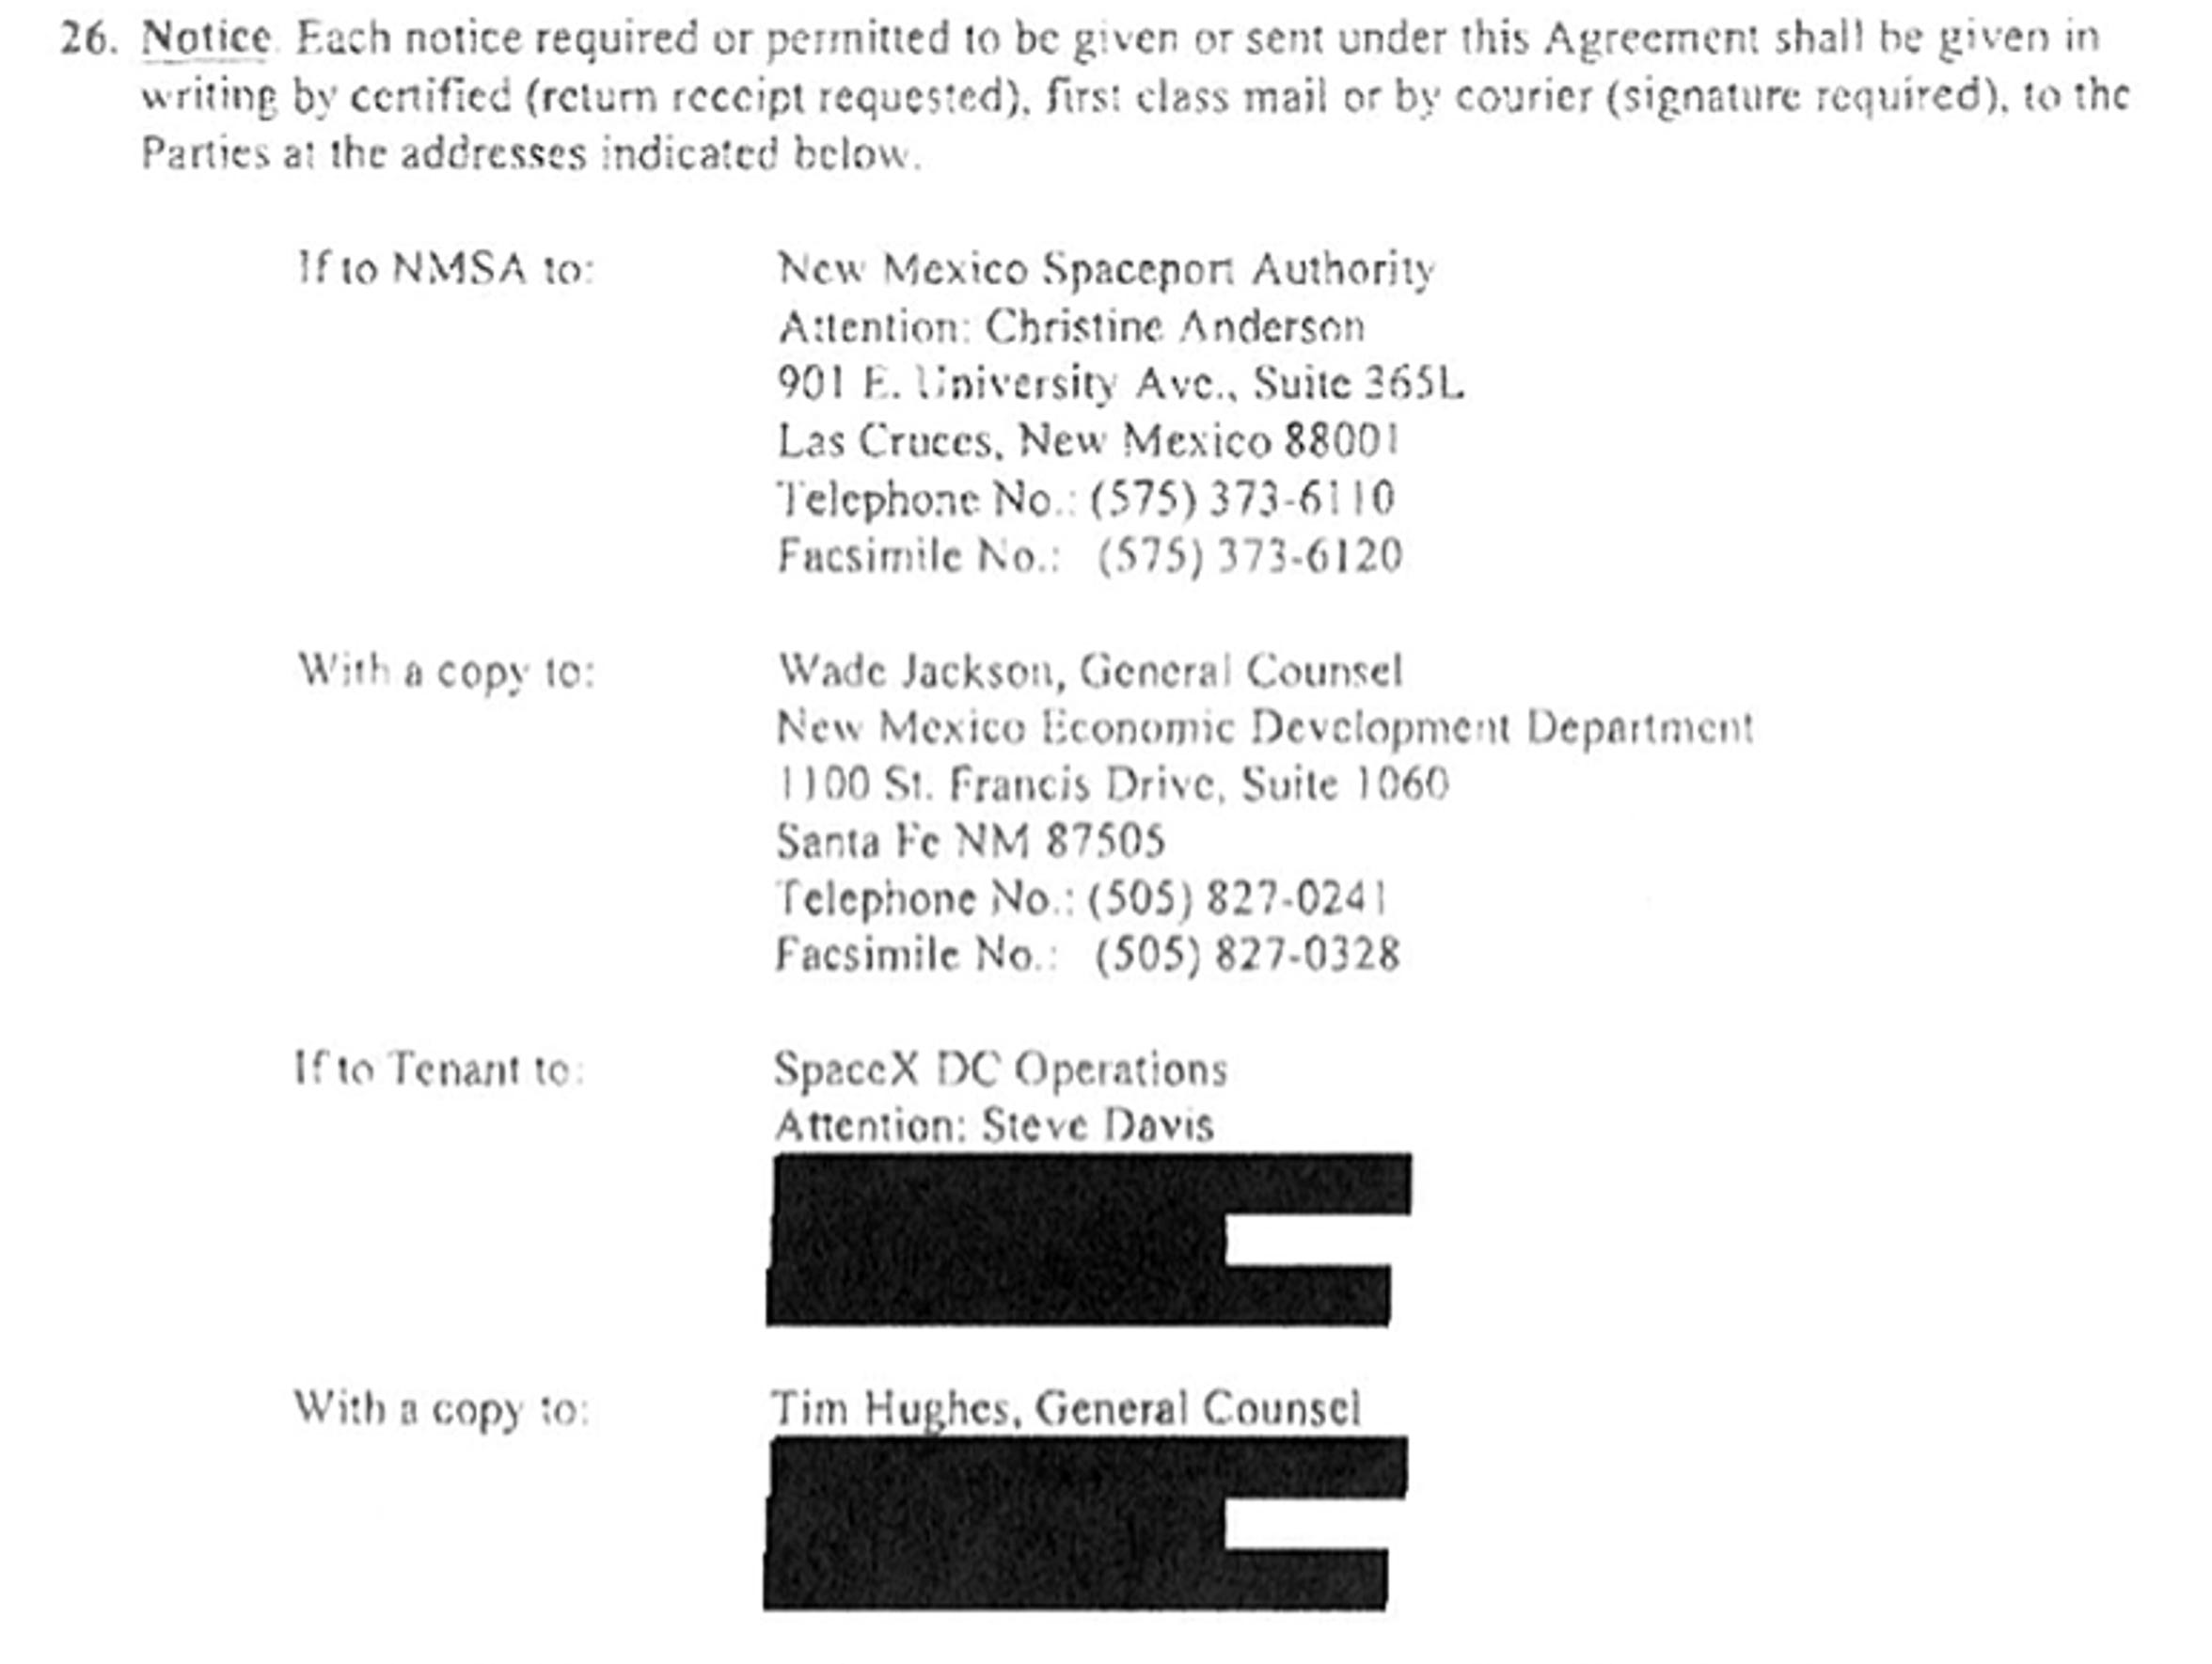 The redactions the New Mexico Space Authority made